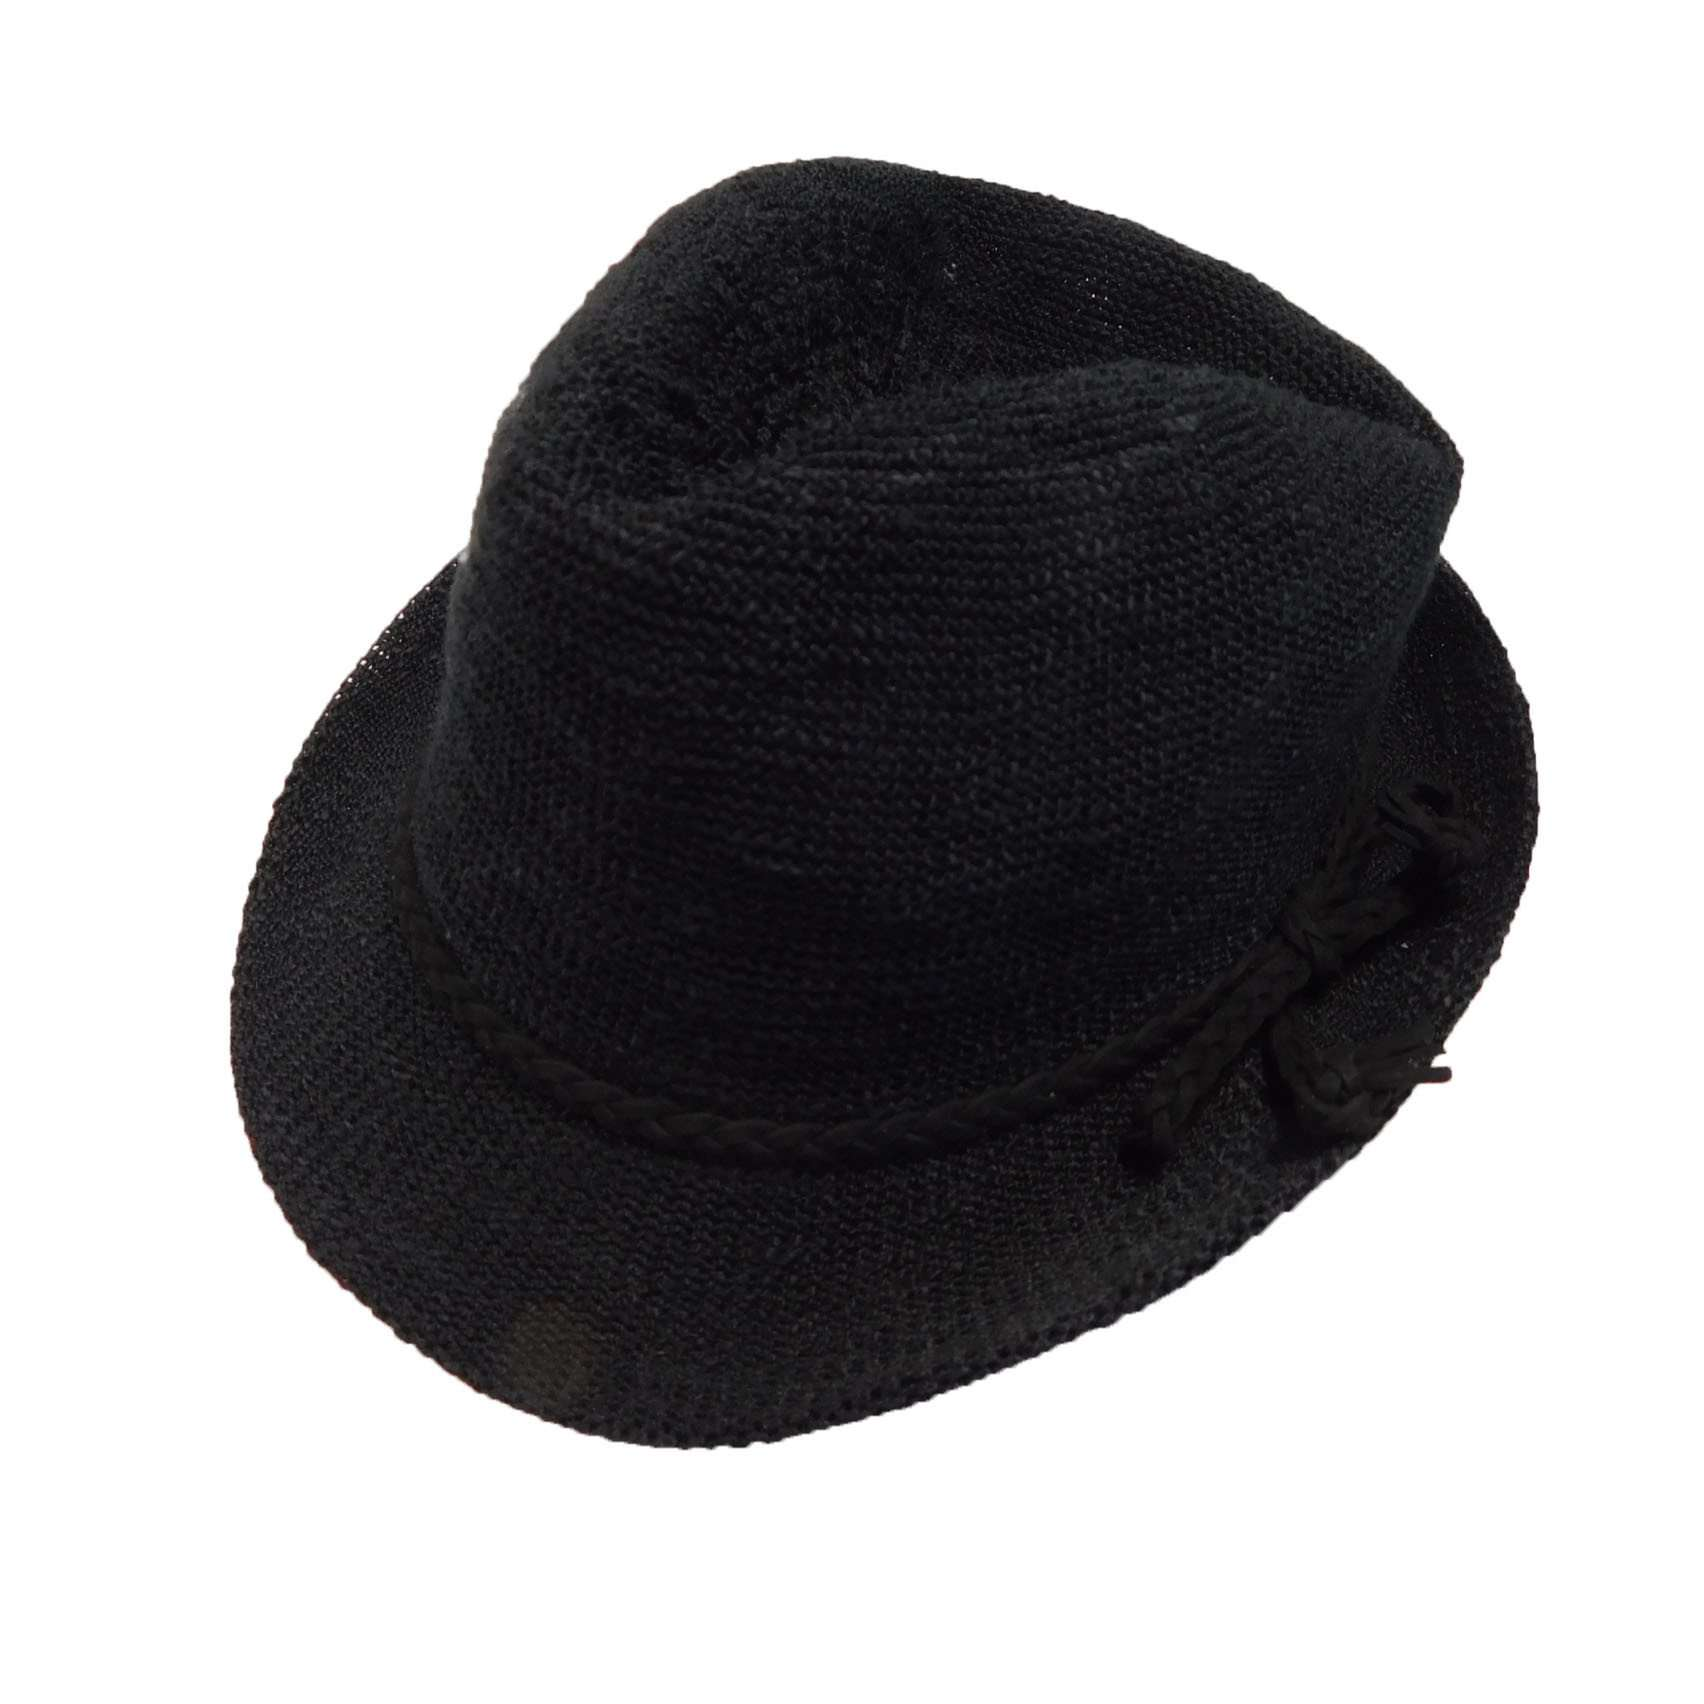 Kid's Knobby Knit Fedora - Black - SetarTrading Hats